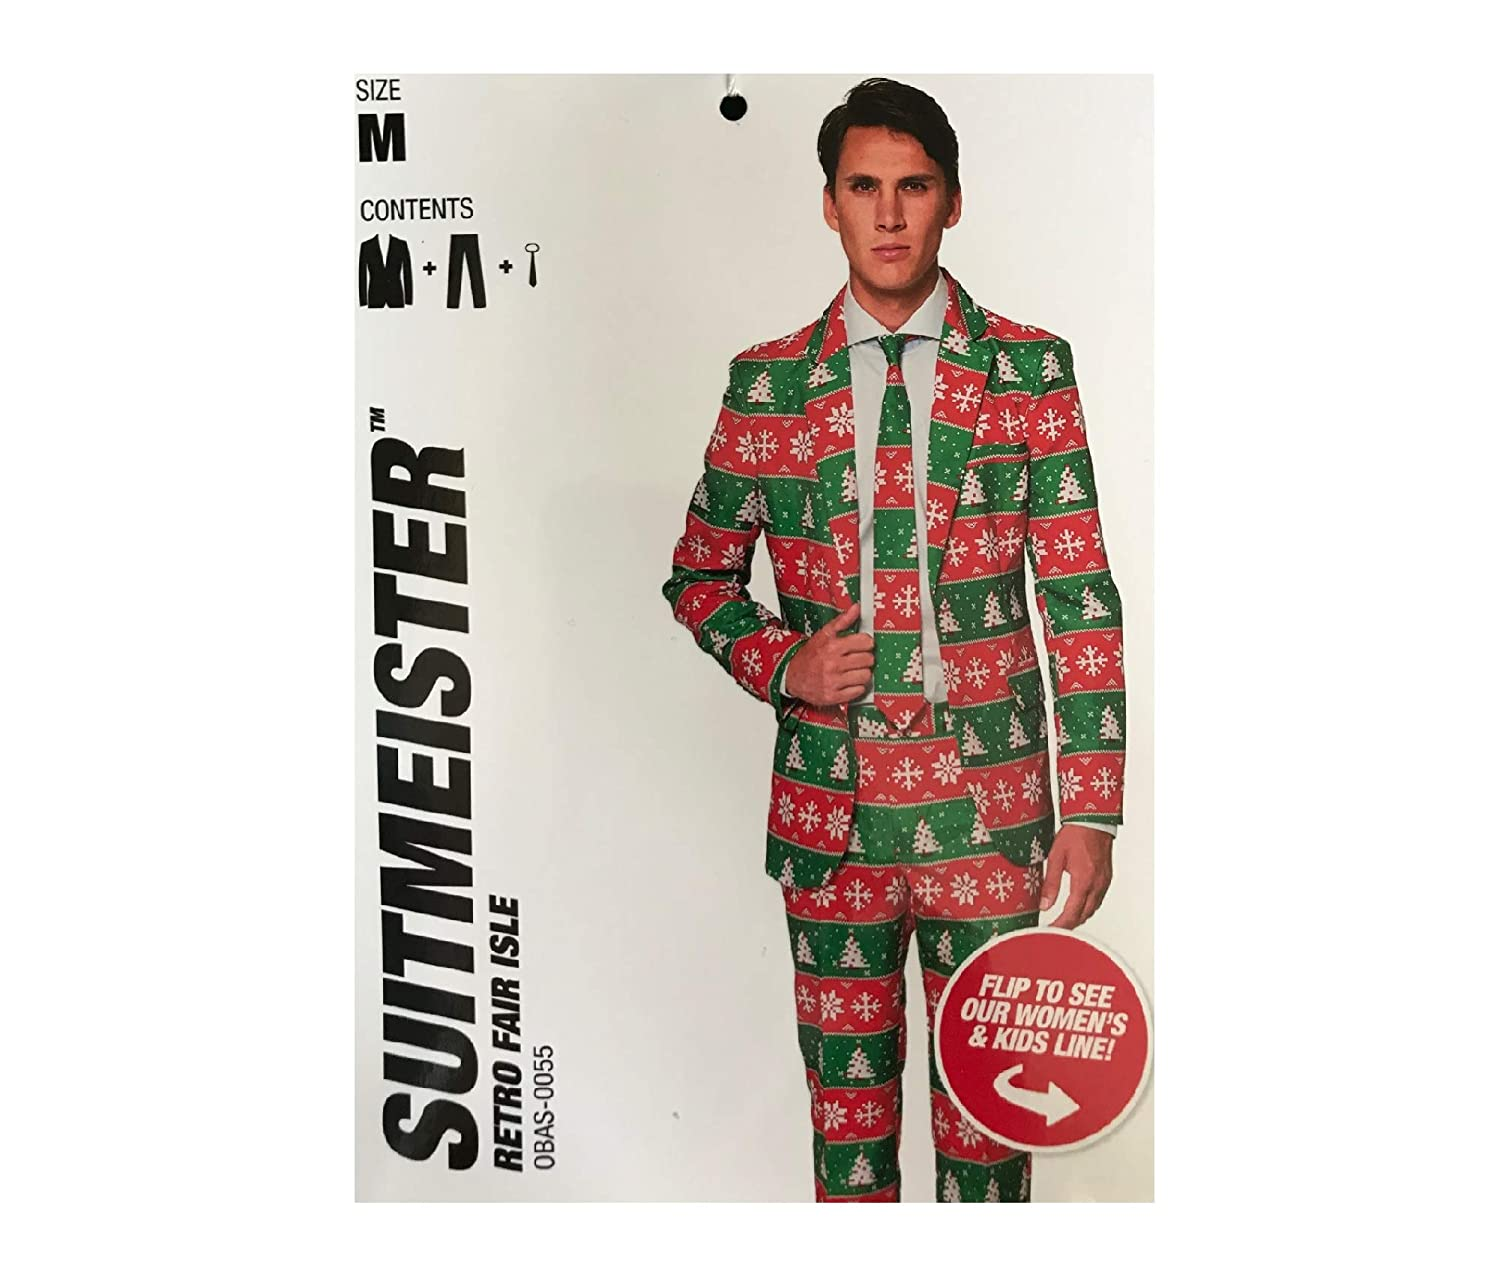 ebce7403e0d0f Suitmeister Men's Ugly Holiday Suit - Red/Green (Size: M, 38-40) at Amazon  Men's Clothing store: